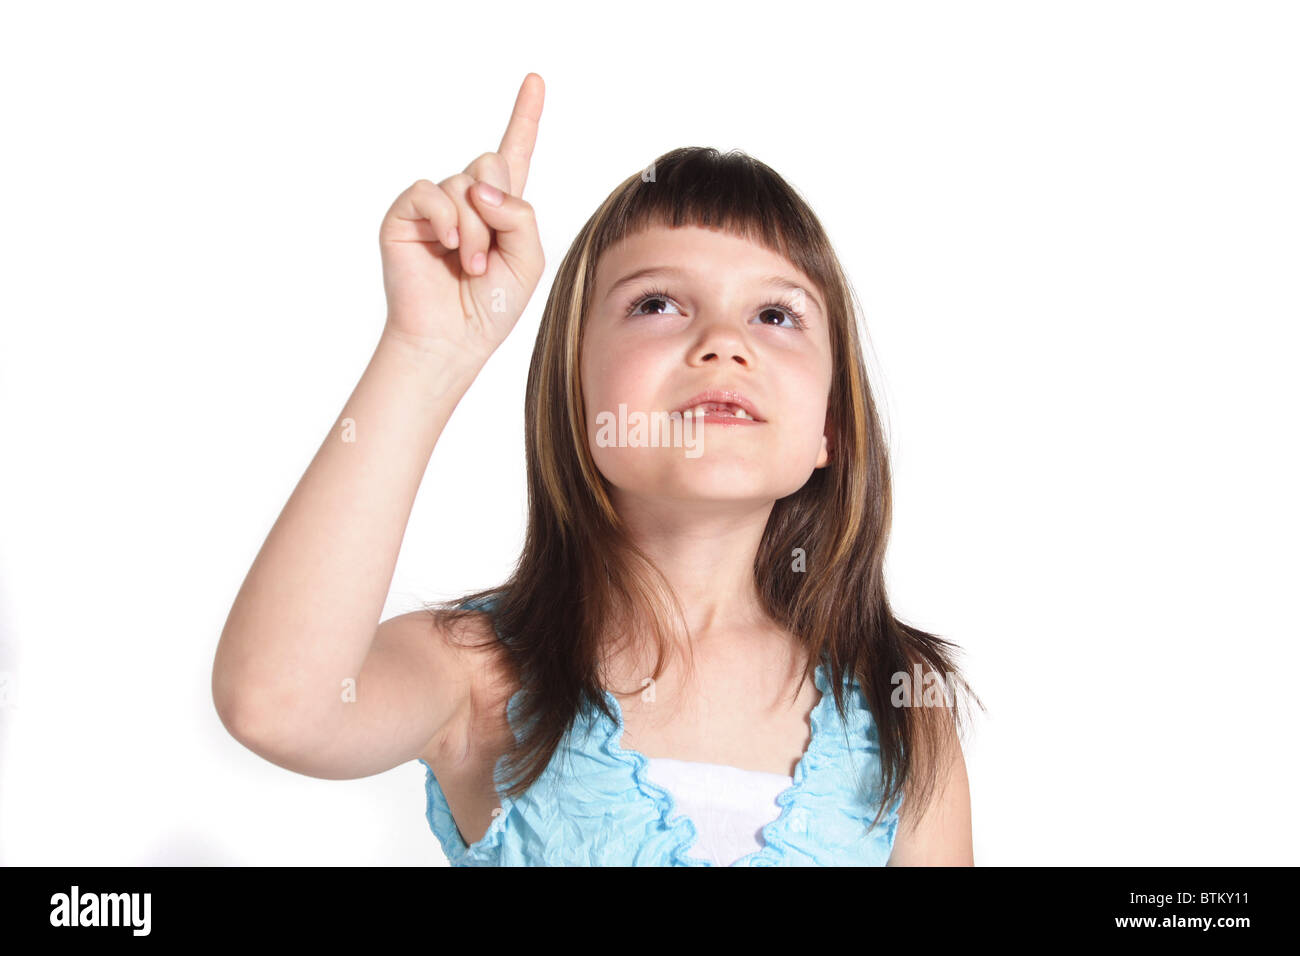 A young girl pointing at something. All isolated on white background. - Stock Image